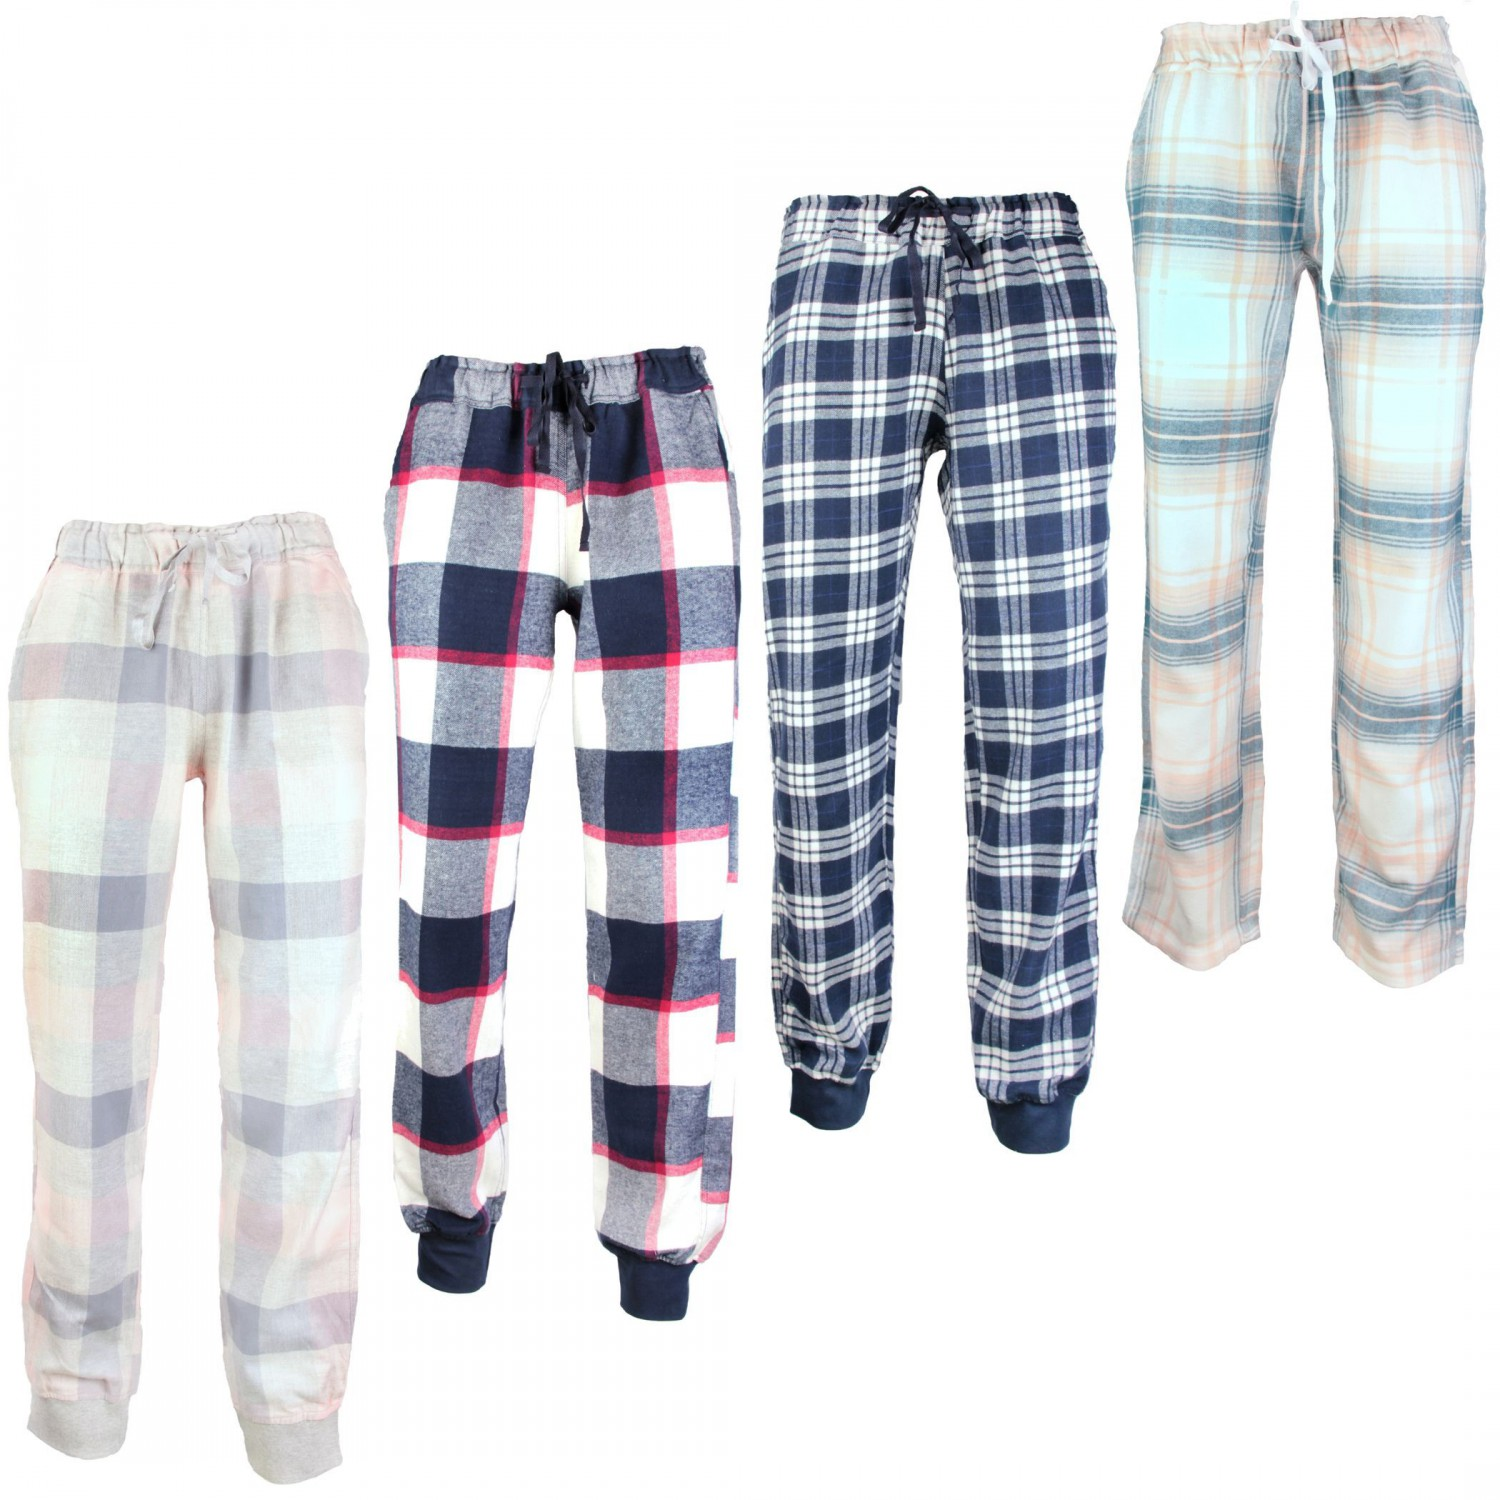 by louise von mg 1 damen flanell pyjamahose loungewear sleepwear farbwahl. Black Bedroom Furniture Sets. Home Design Ideas